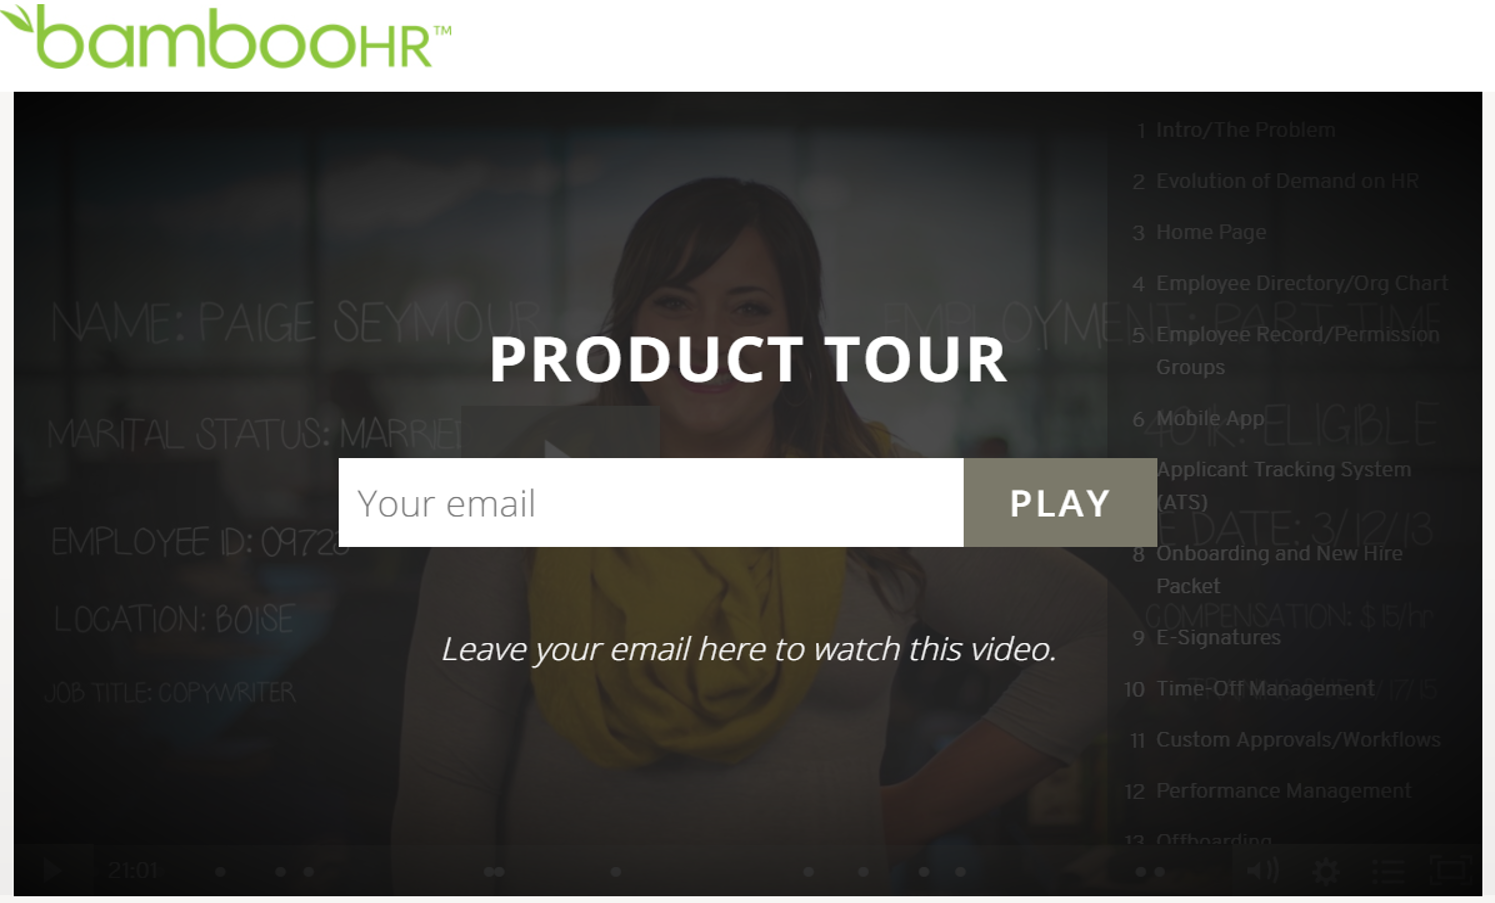 This is a link to a recorded product tour/demo. It's about 20 minutes long and is packed with great information!